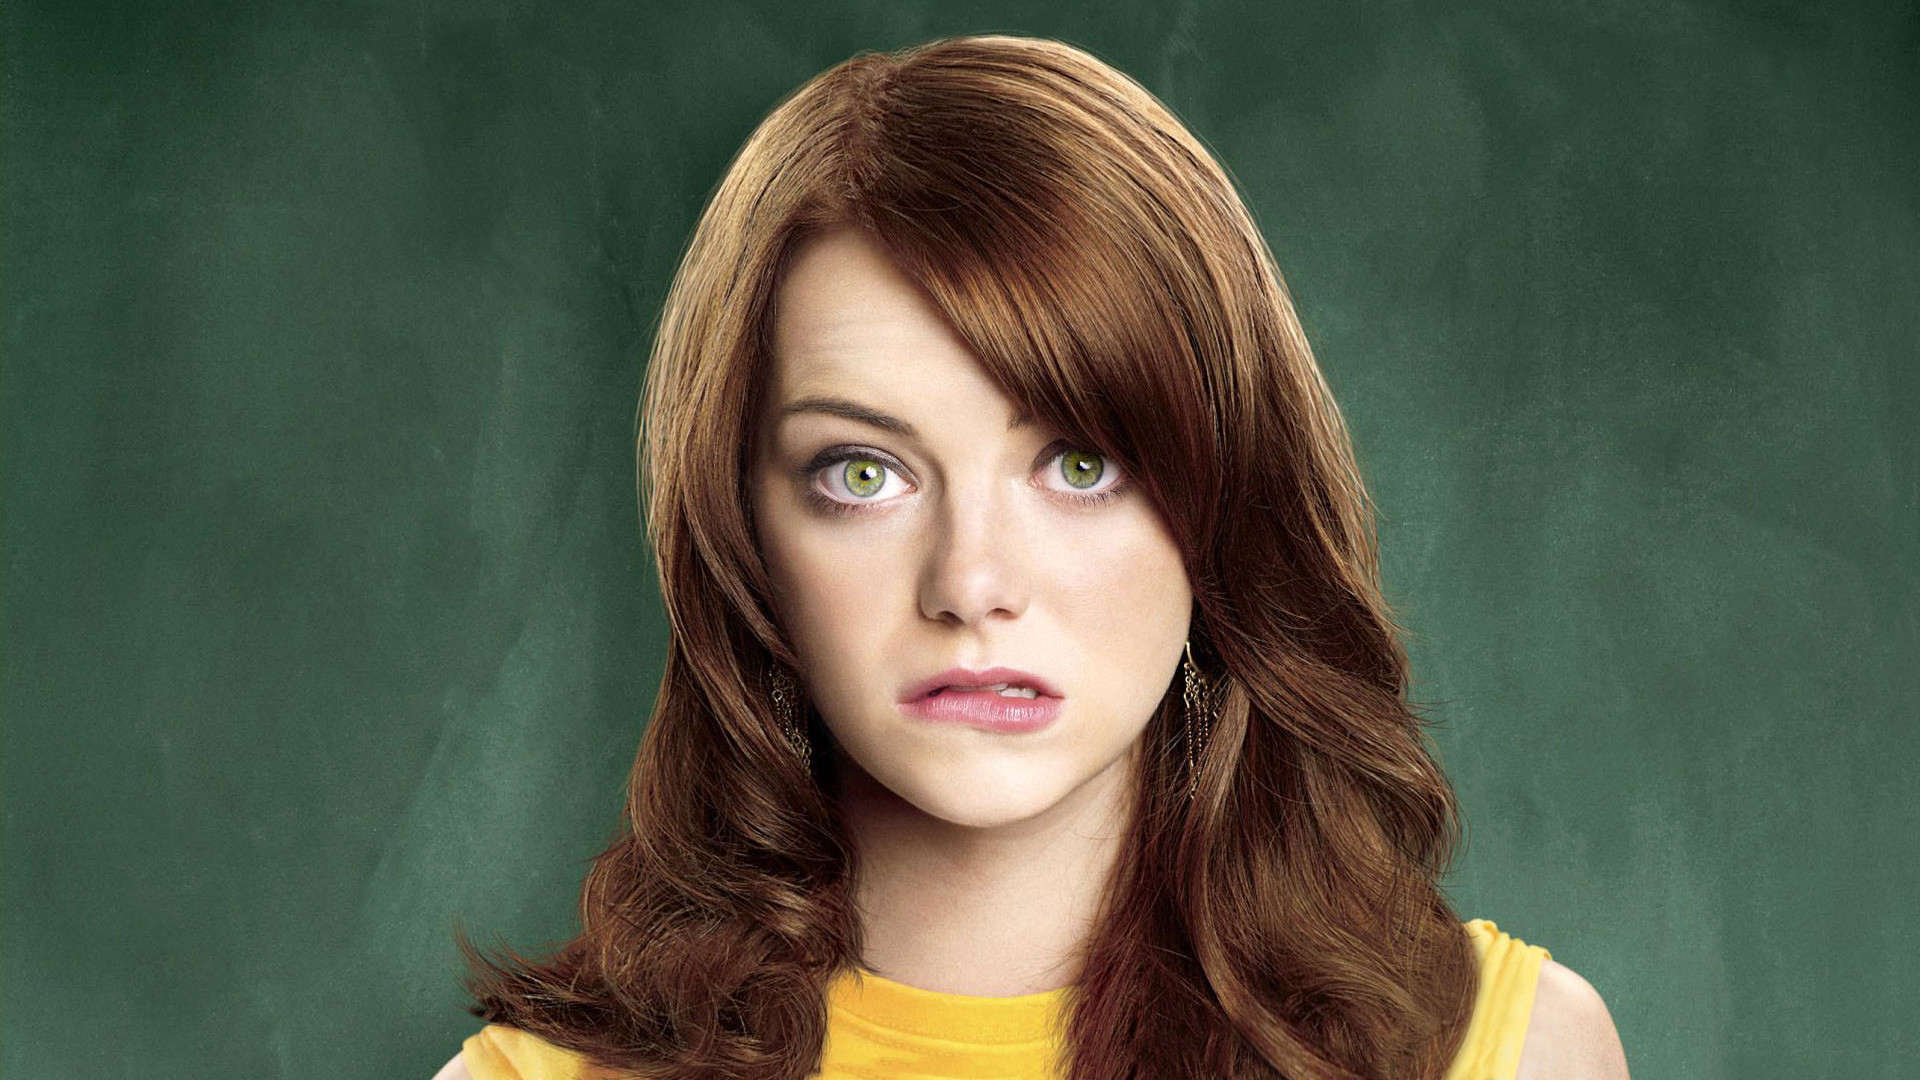 Emma Stone Backgrounds on Wallpapers Vista